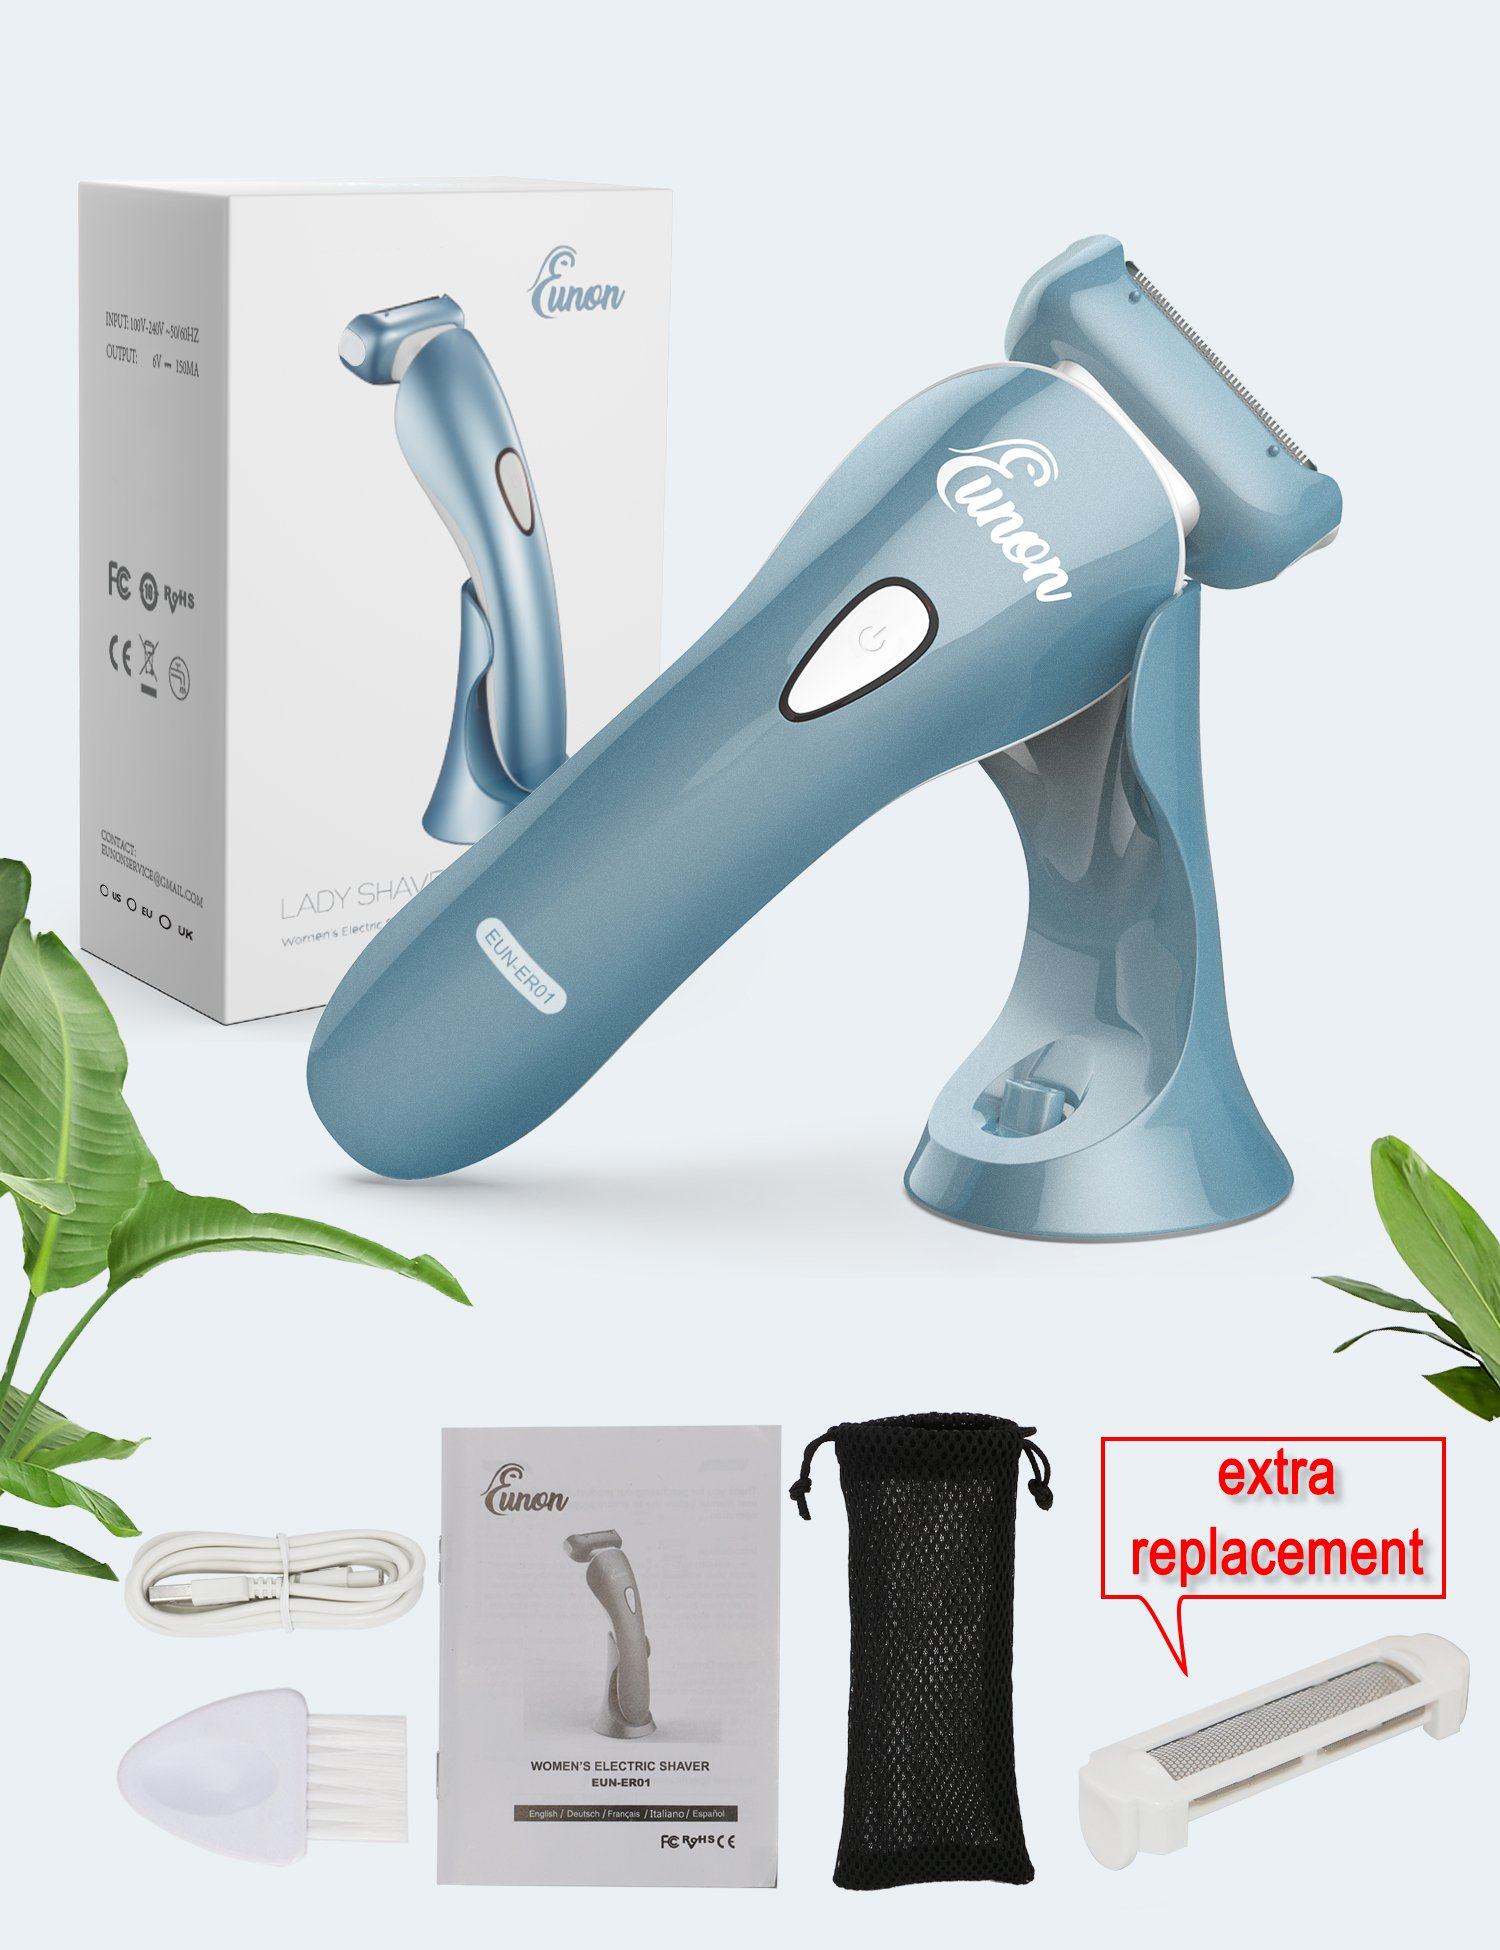 Electric Razor for Women - Eunon Womens Shaver Bikini Trimmer Body Hair Removal for legs and Underarms Rechargeable Wet and Dry Painless Cordless with LED Light